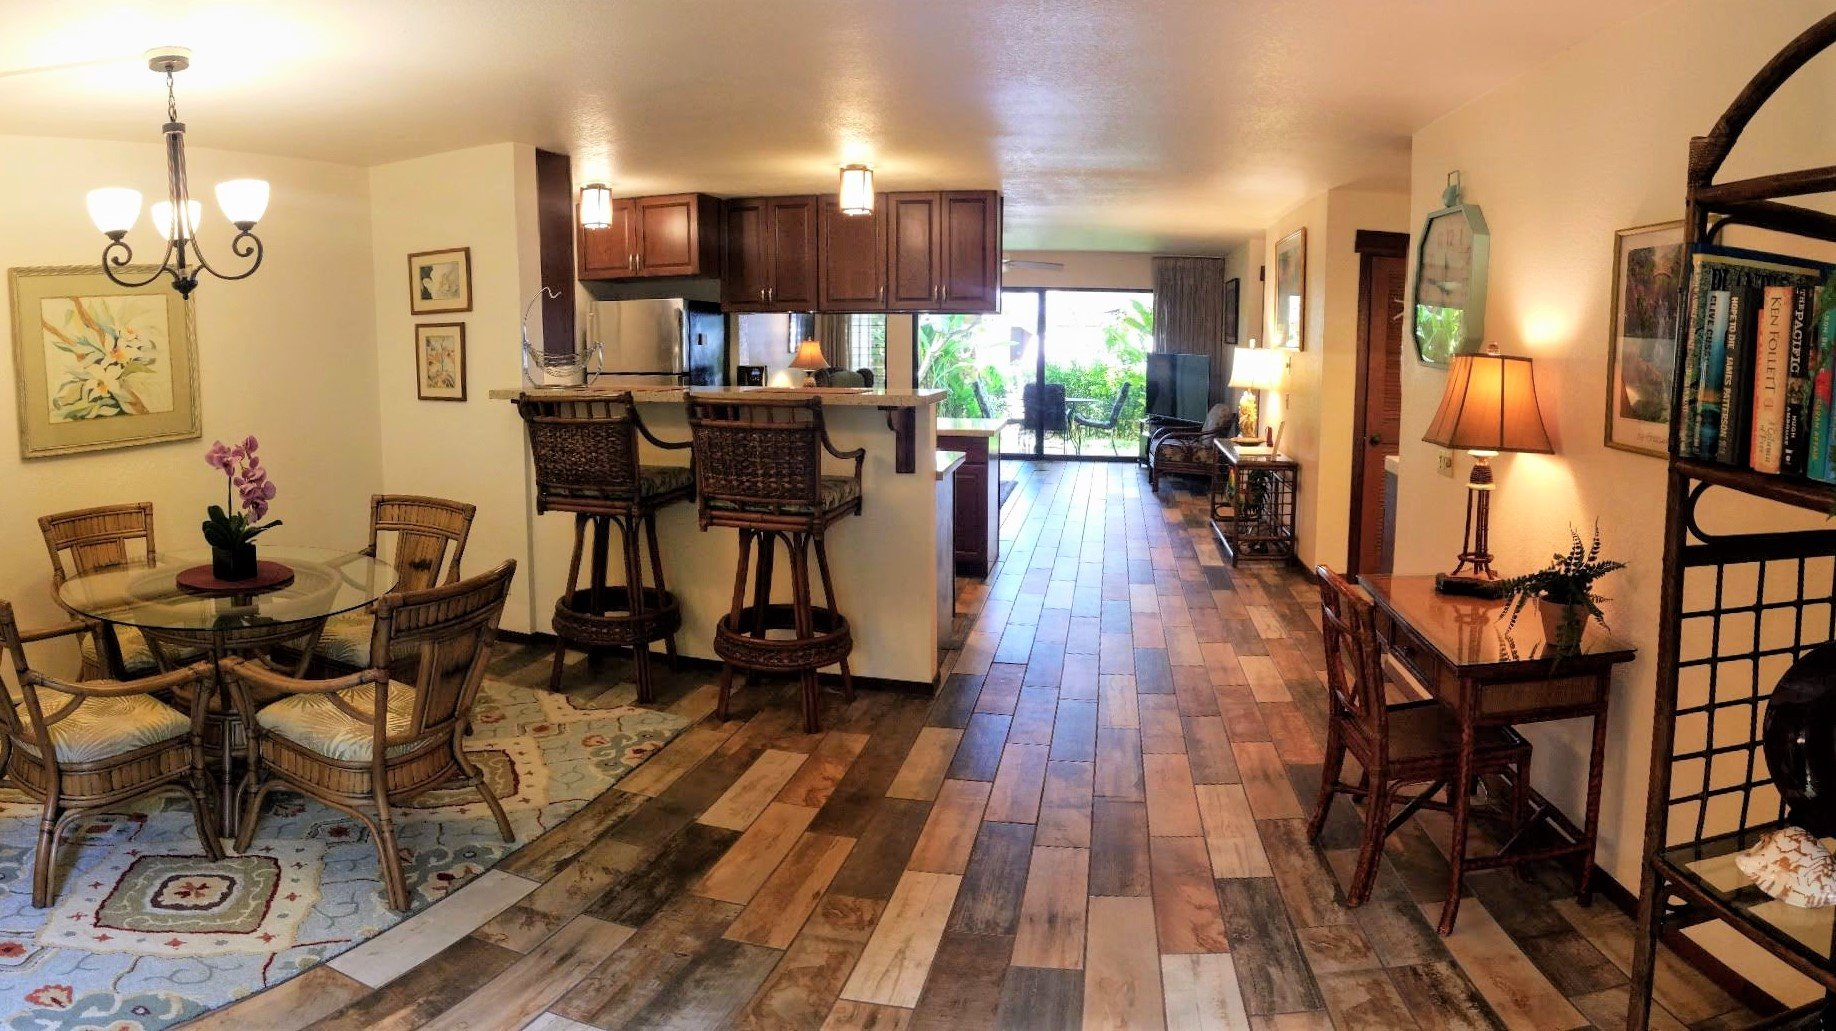 """Seller is looking for a """"Back Up Offer""""<br><br>Tastefully upgraded 1 bedroom, 1 bath condo on the ground floor.  Unit is priced for an immediate sale as it is 1 of only 2 fee simple units under $500k in Poipu.  Located within the Visitor's Destination Area, short term/vacation rentals are allowed.  Waikomo Stream Villas is conveniently located in the heart of Poipu and is surrounded by great company!  Adjacent to Waikomo Stream Villas is Koloa Landing, across the street is the Poipu Beach Estates subdivision, and on the opposite side of the roundabout is the Kukuiula Shopping Village.  Shopping, dining, surfing, snorkeling, golfing, turtle watching are all within minutes of this unit!  Wait till you see the pool and barbecue area!<br><br>This is a turn-key property!"""